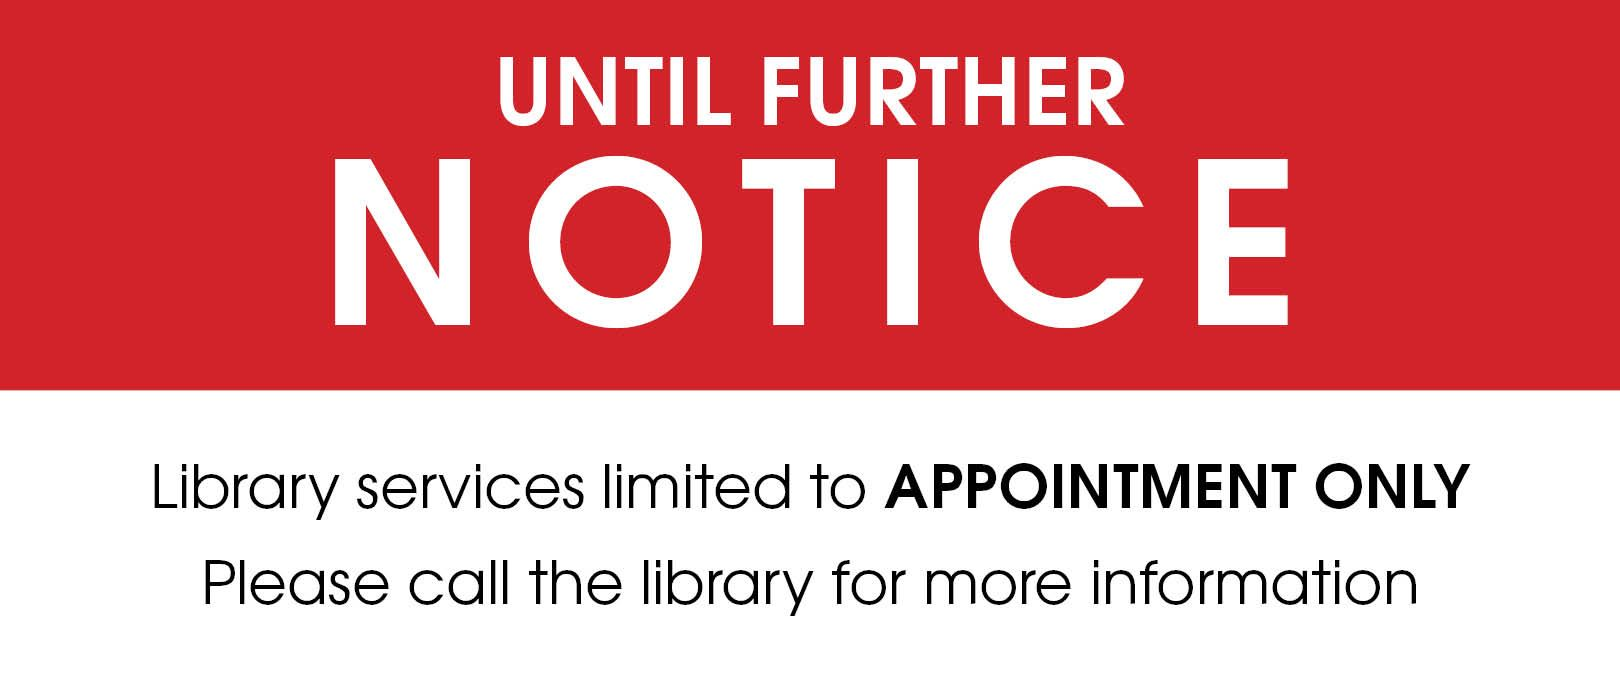 Library Service Limited To Appointment and Curbside Service Until Further Notice